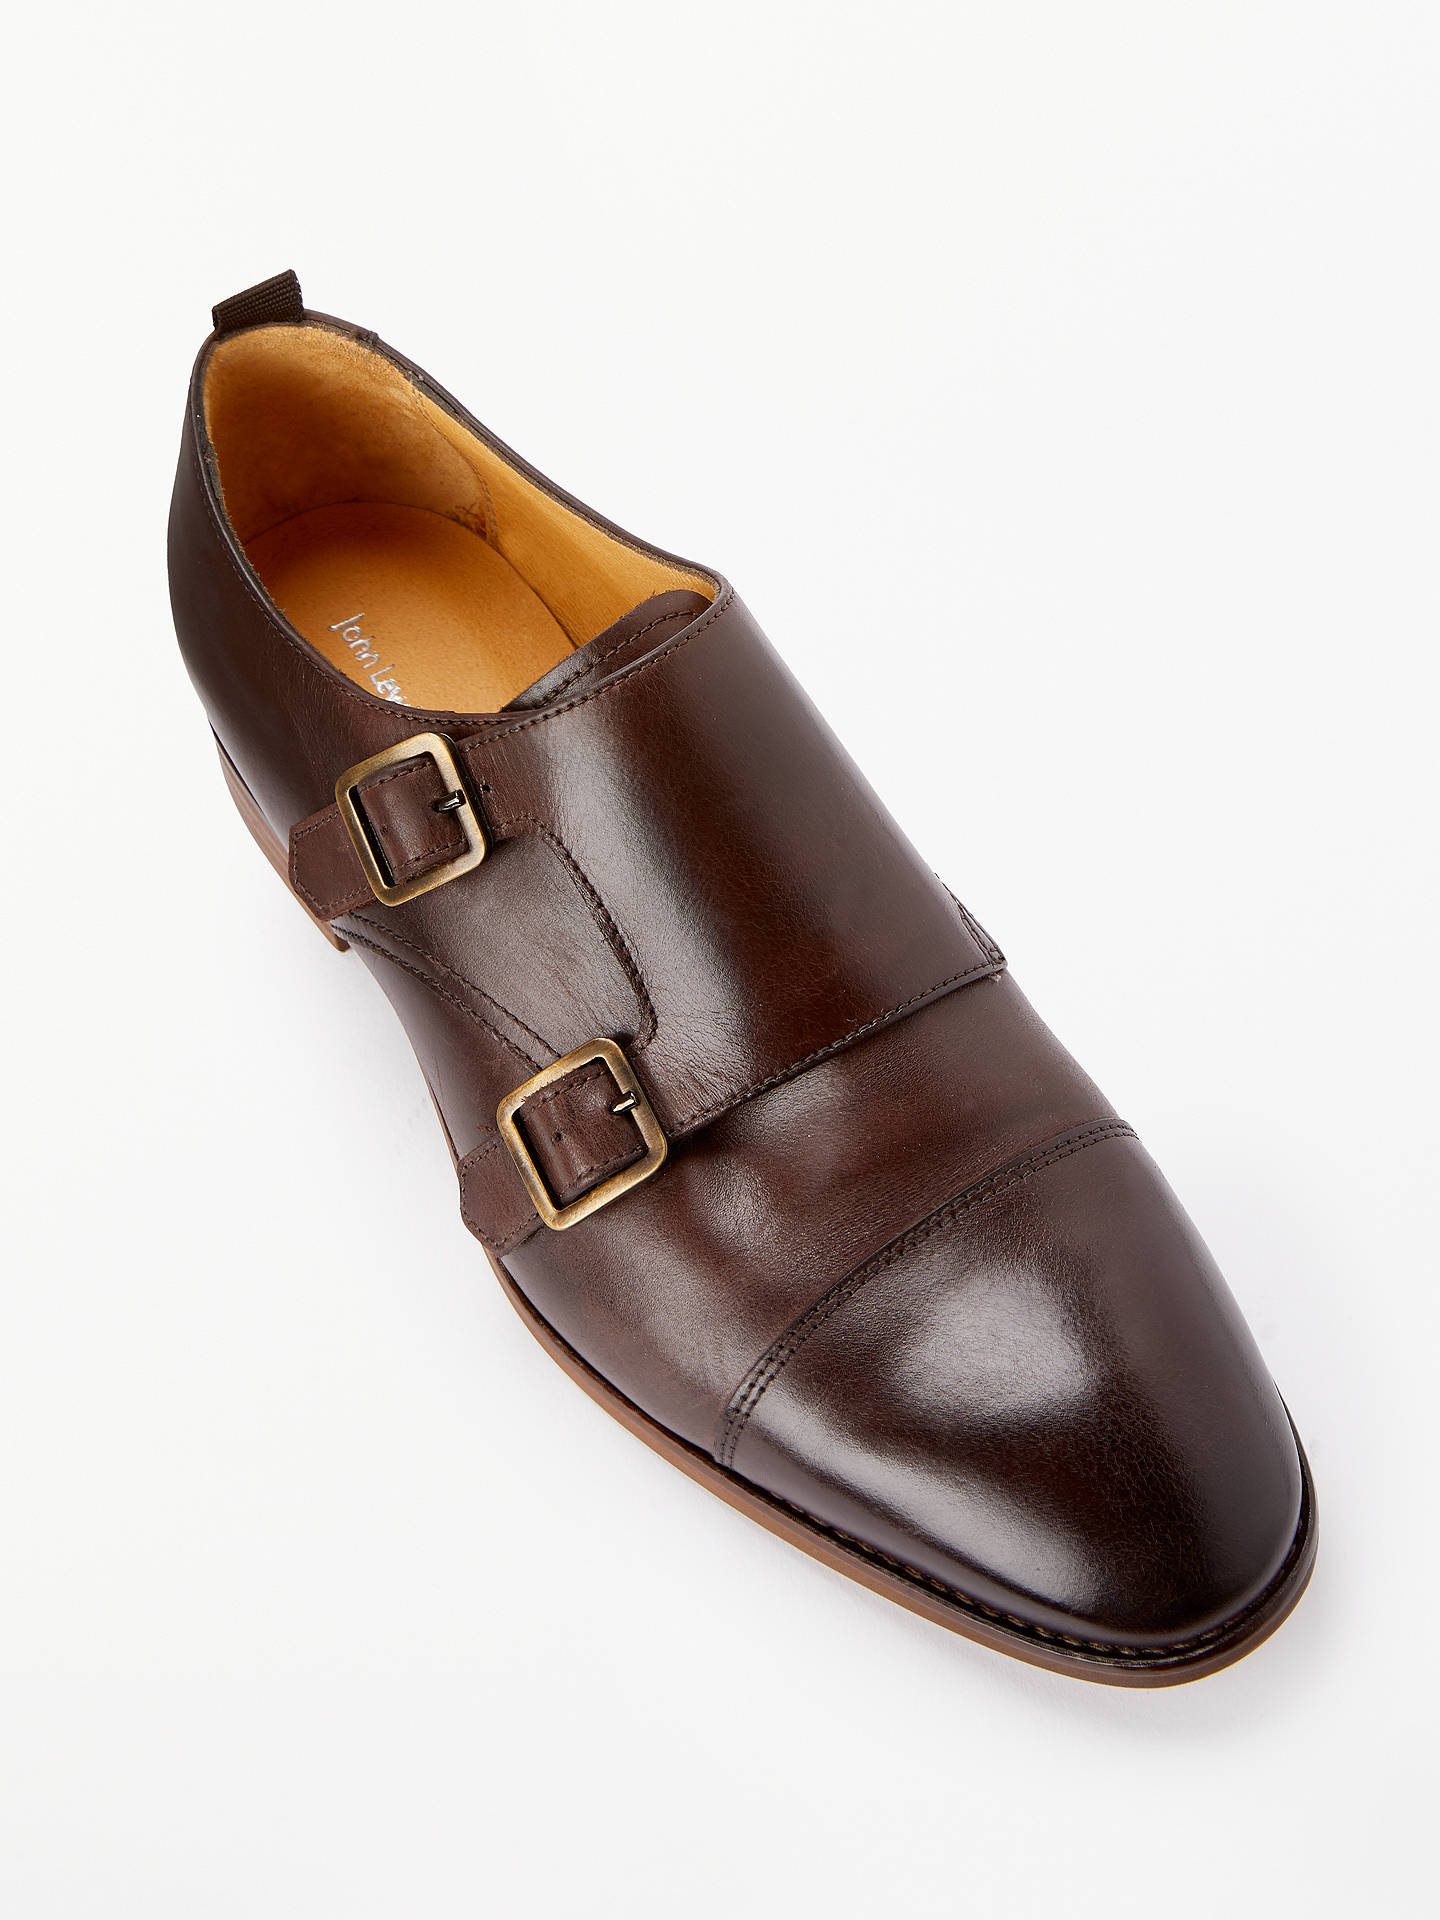 Buy John Lewis & Partners Genny Monk Strap Shoes, Brown Leather, 4 Online at johnlewis.com